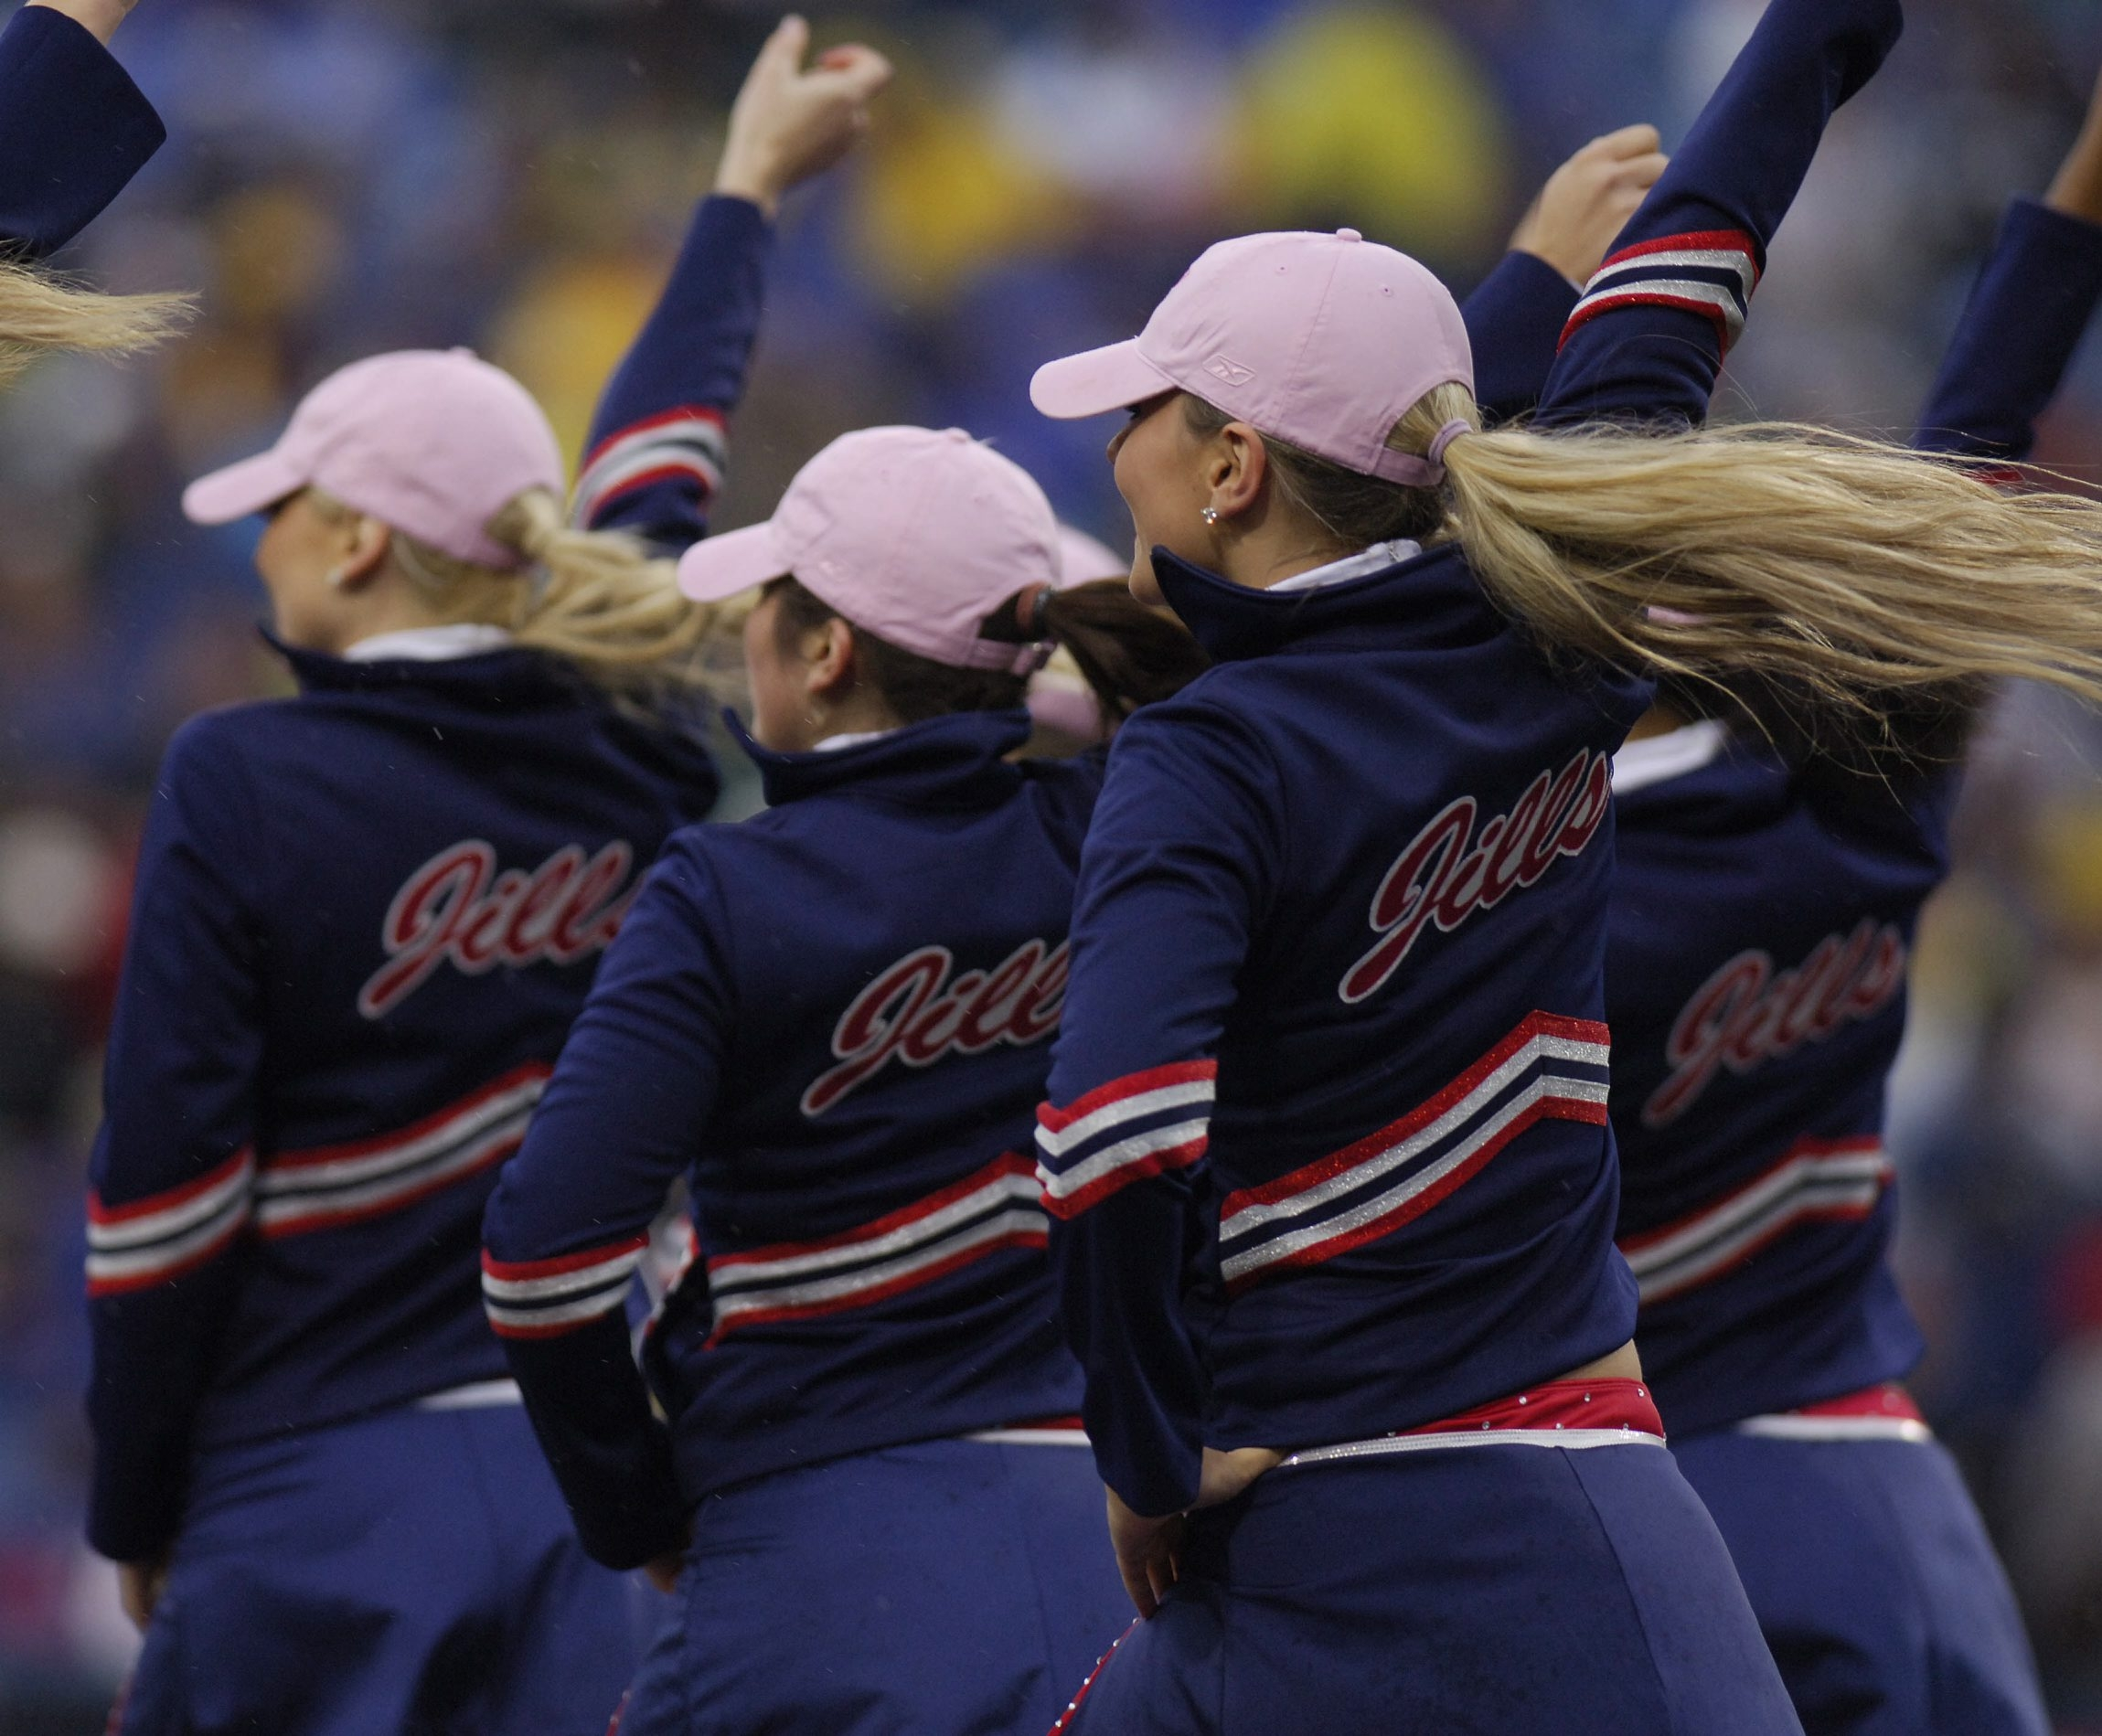 Buffalo Jills cheerleaders perform during the during the halftime of the Patriots/Bills game at Ralph Wilson Stadium on Oct. 22, 2006.